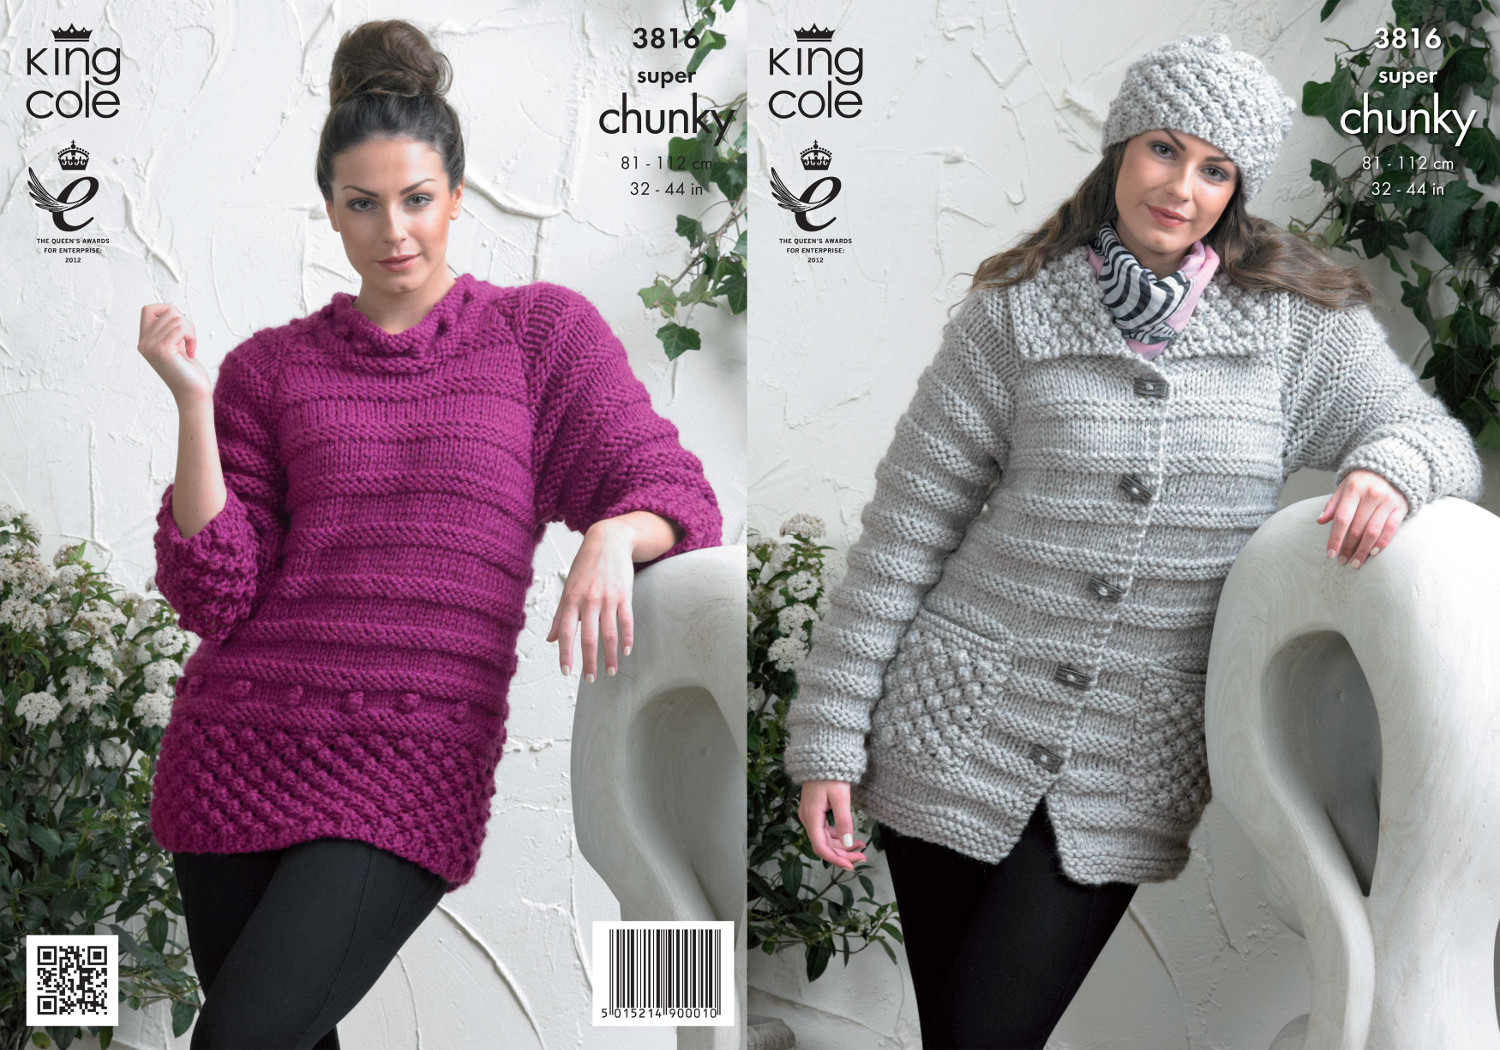 King cole ladies knitting pattern womens super chunky jacket king cole ladies knitting pattern womens super chunky jacket sweater hat 3816 bankloansurffo Image collections